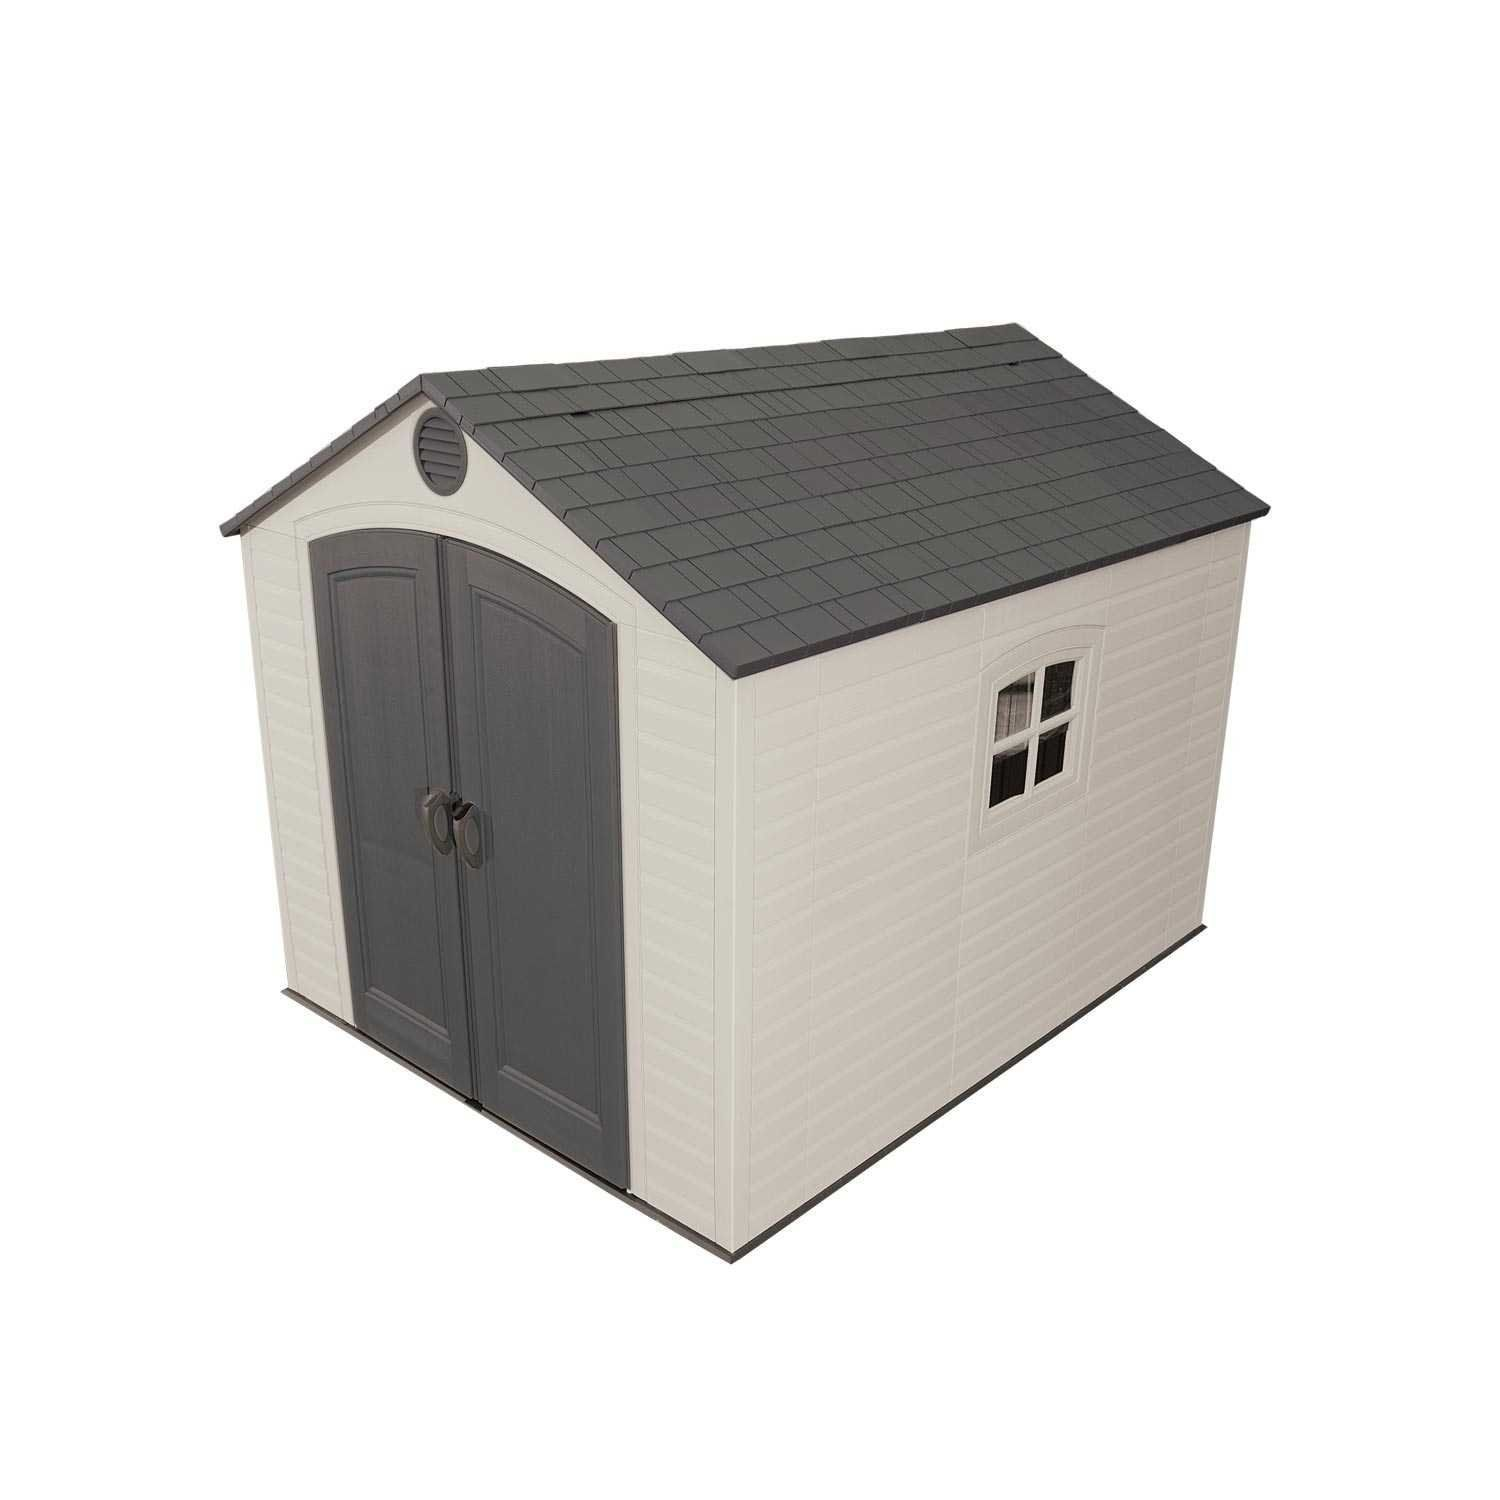 Lifetime Outdoor Storage Shed with Window Skylights and Shelving